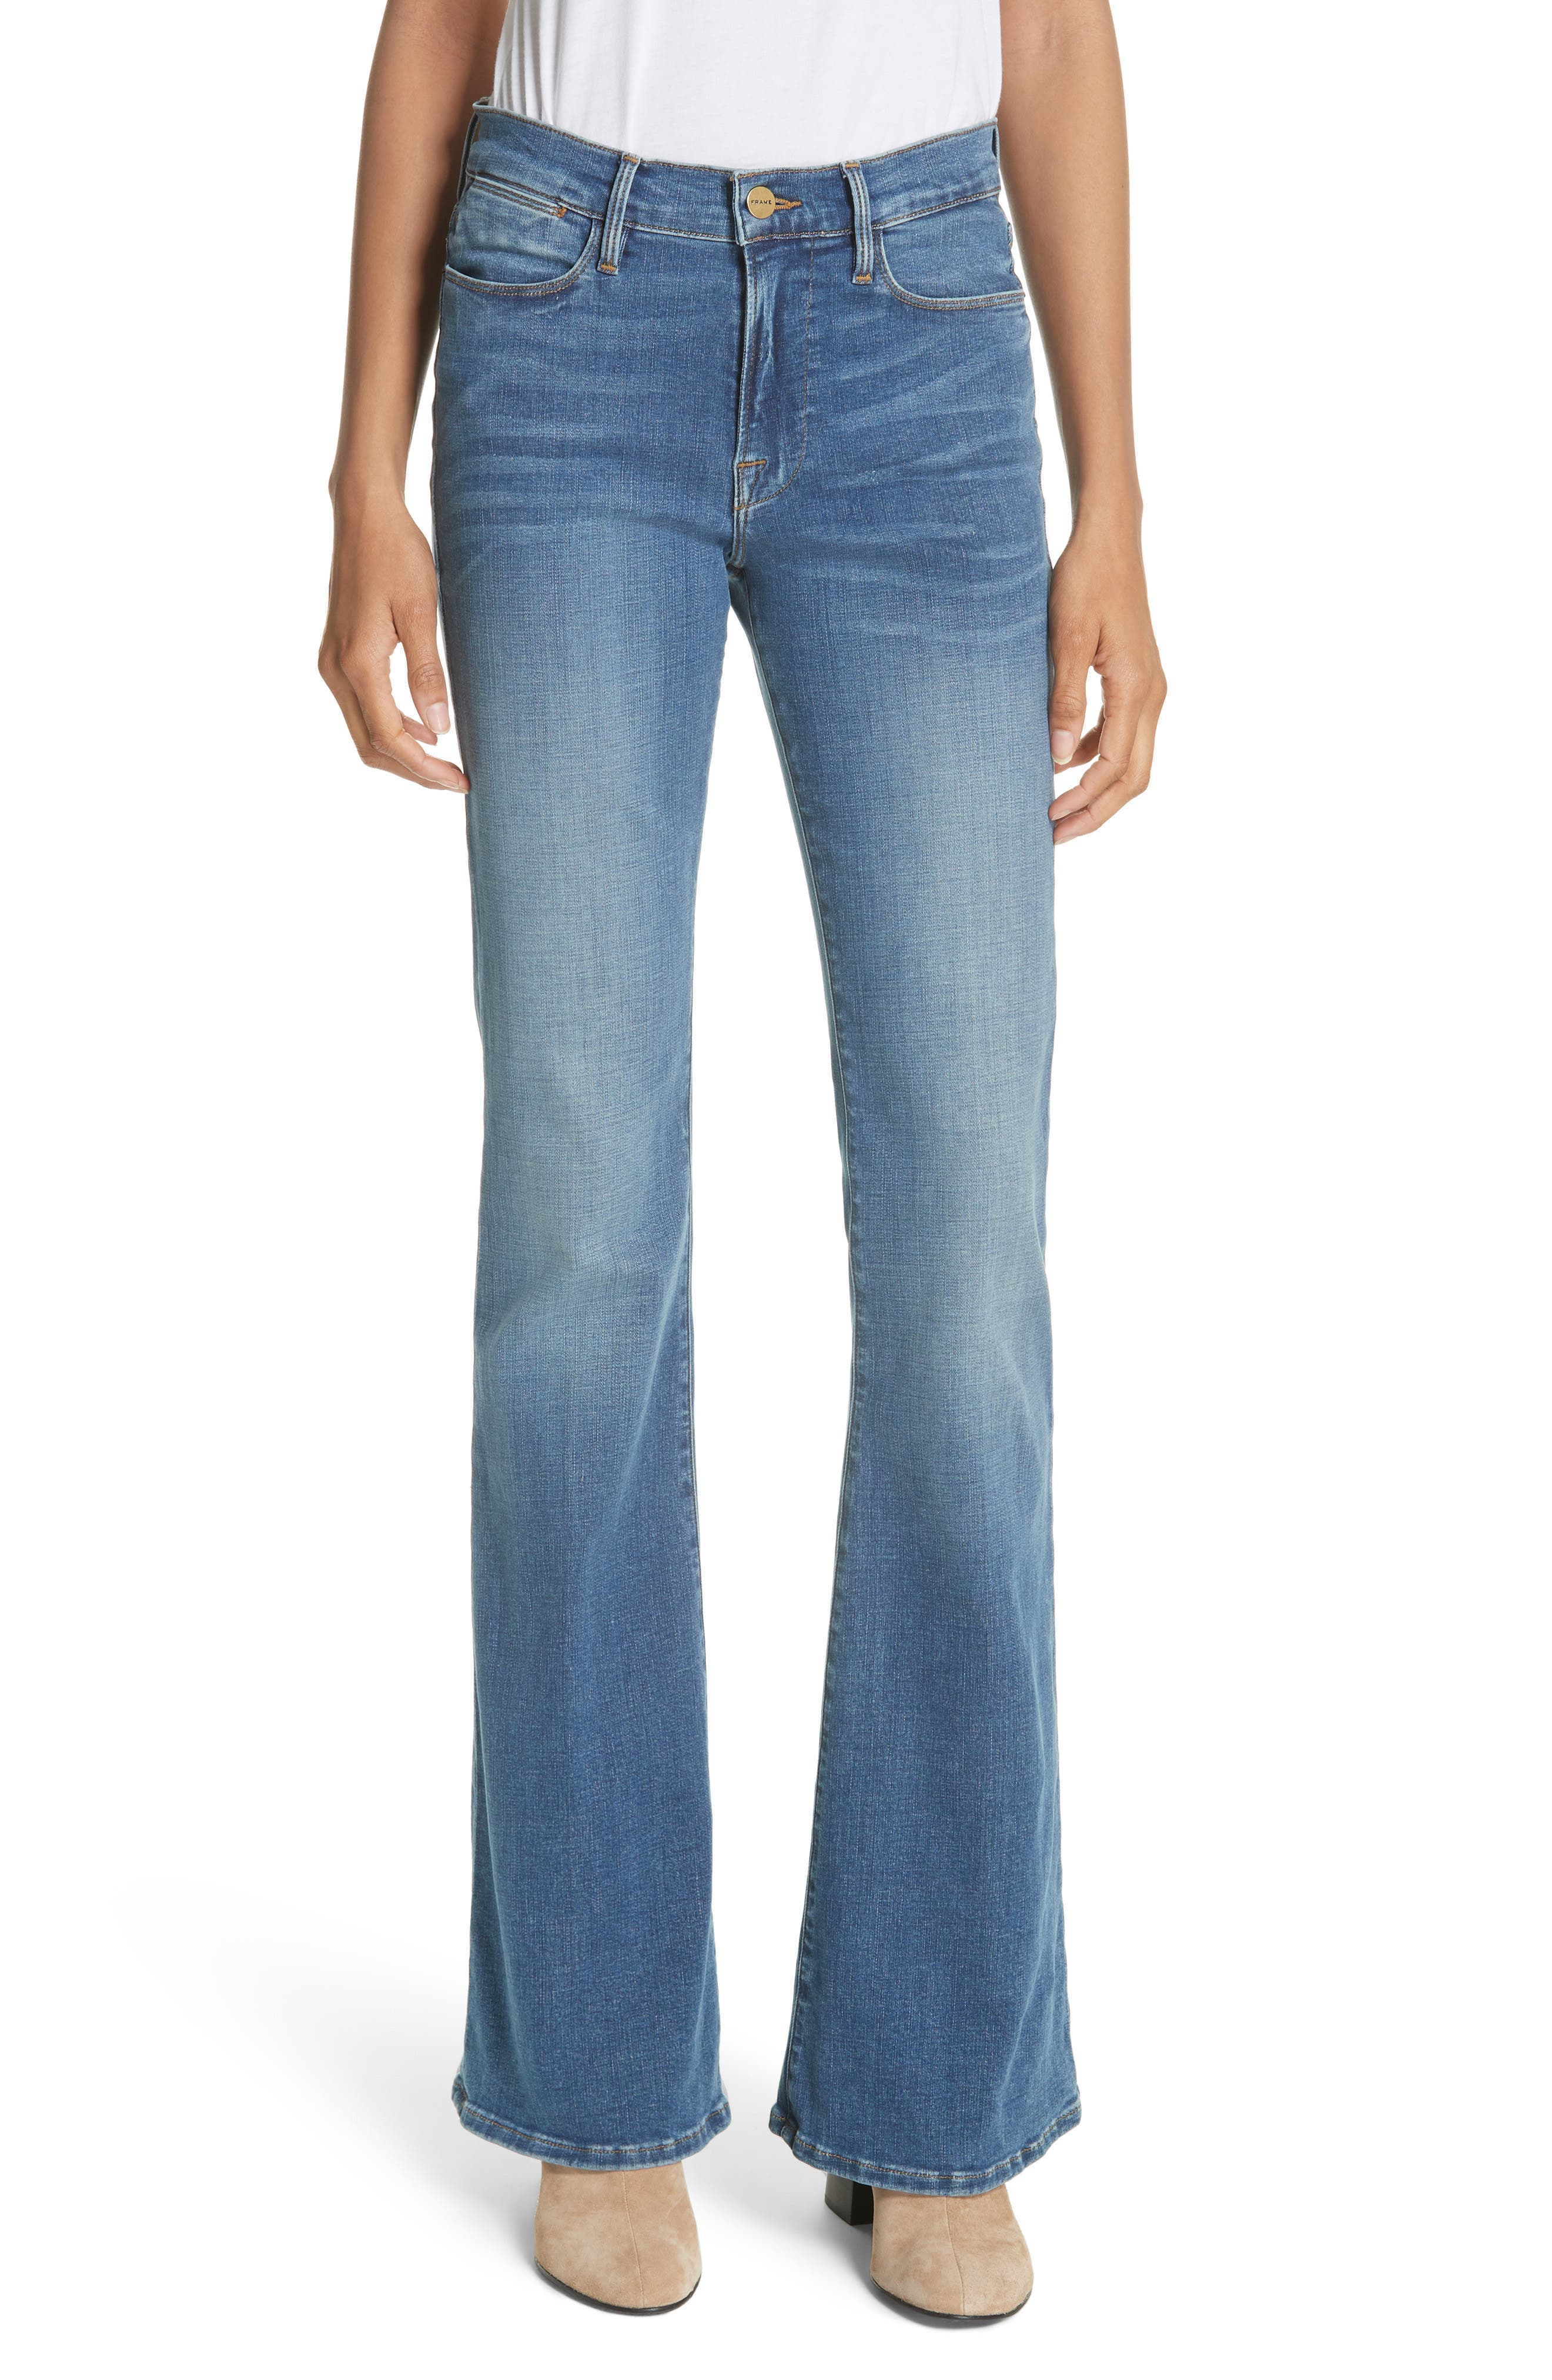 FRAME, Le High Flare Jeans, Main thumbnail 1, color, COLUMBUS